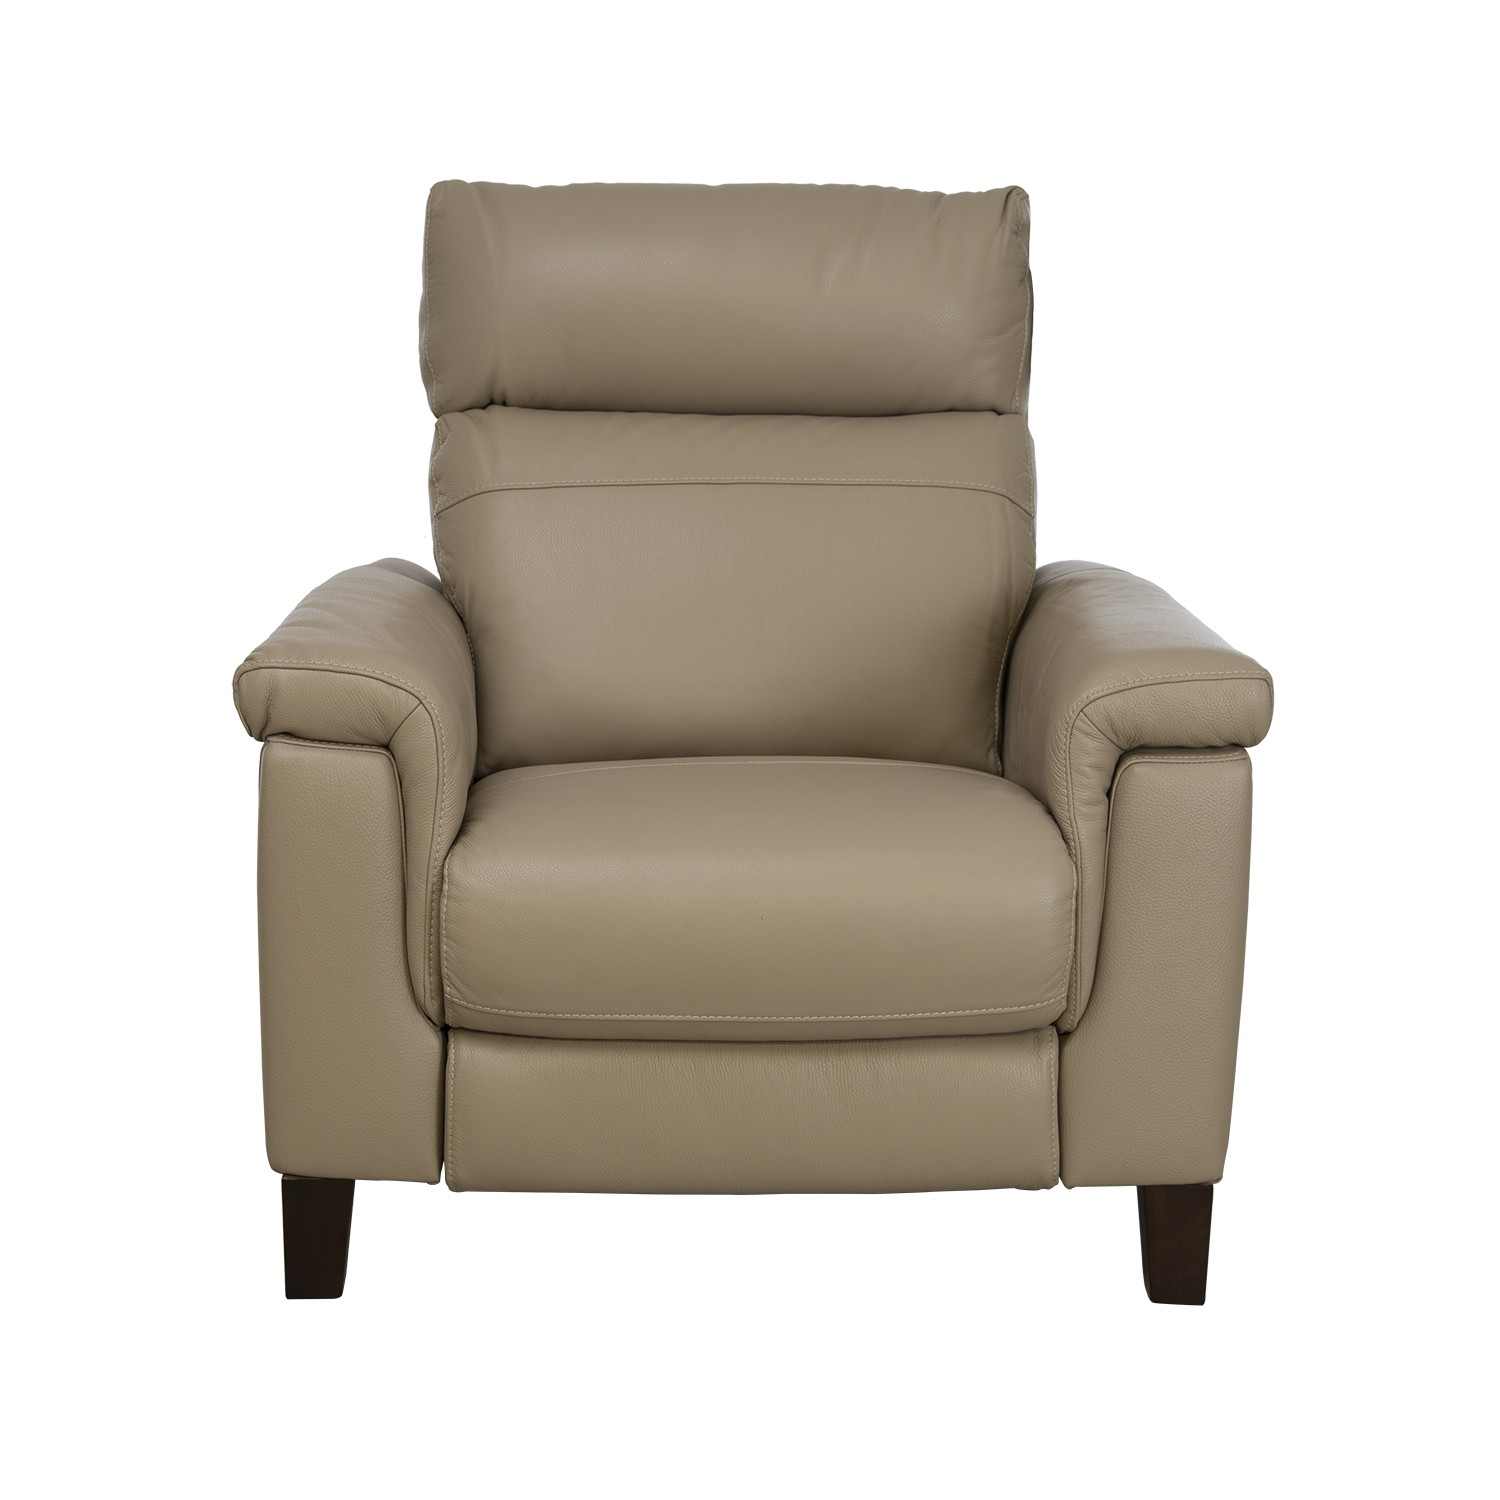 Casa Fraser 2 Seater Power Recliner Leather Sofa   Compare